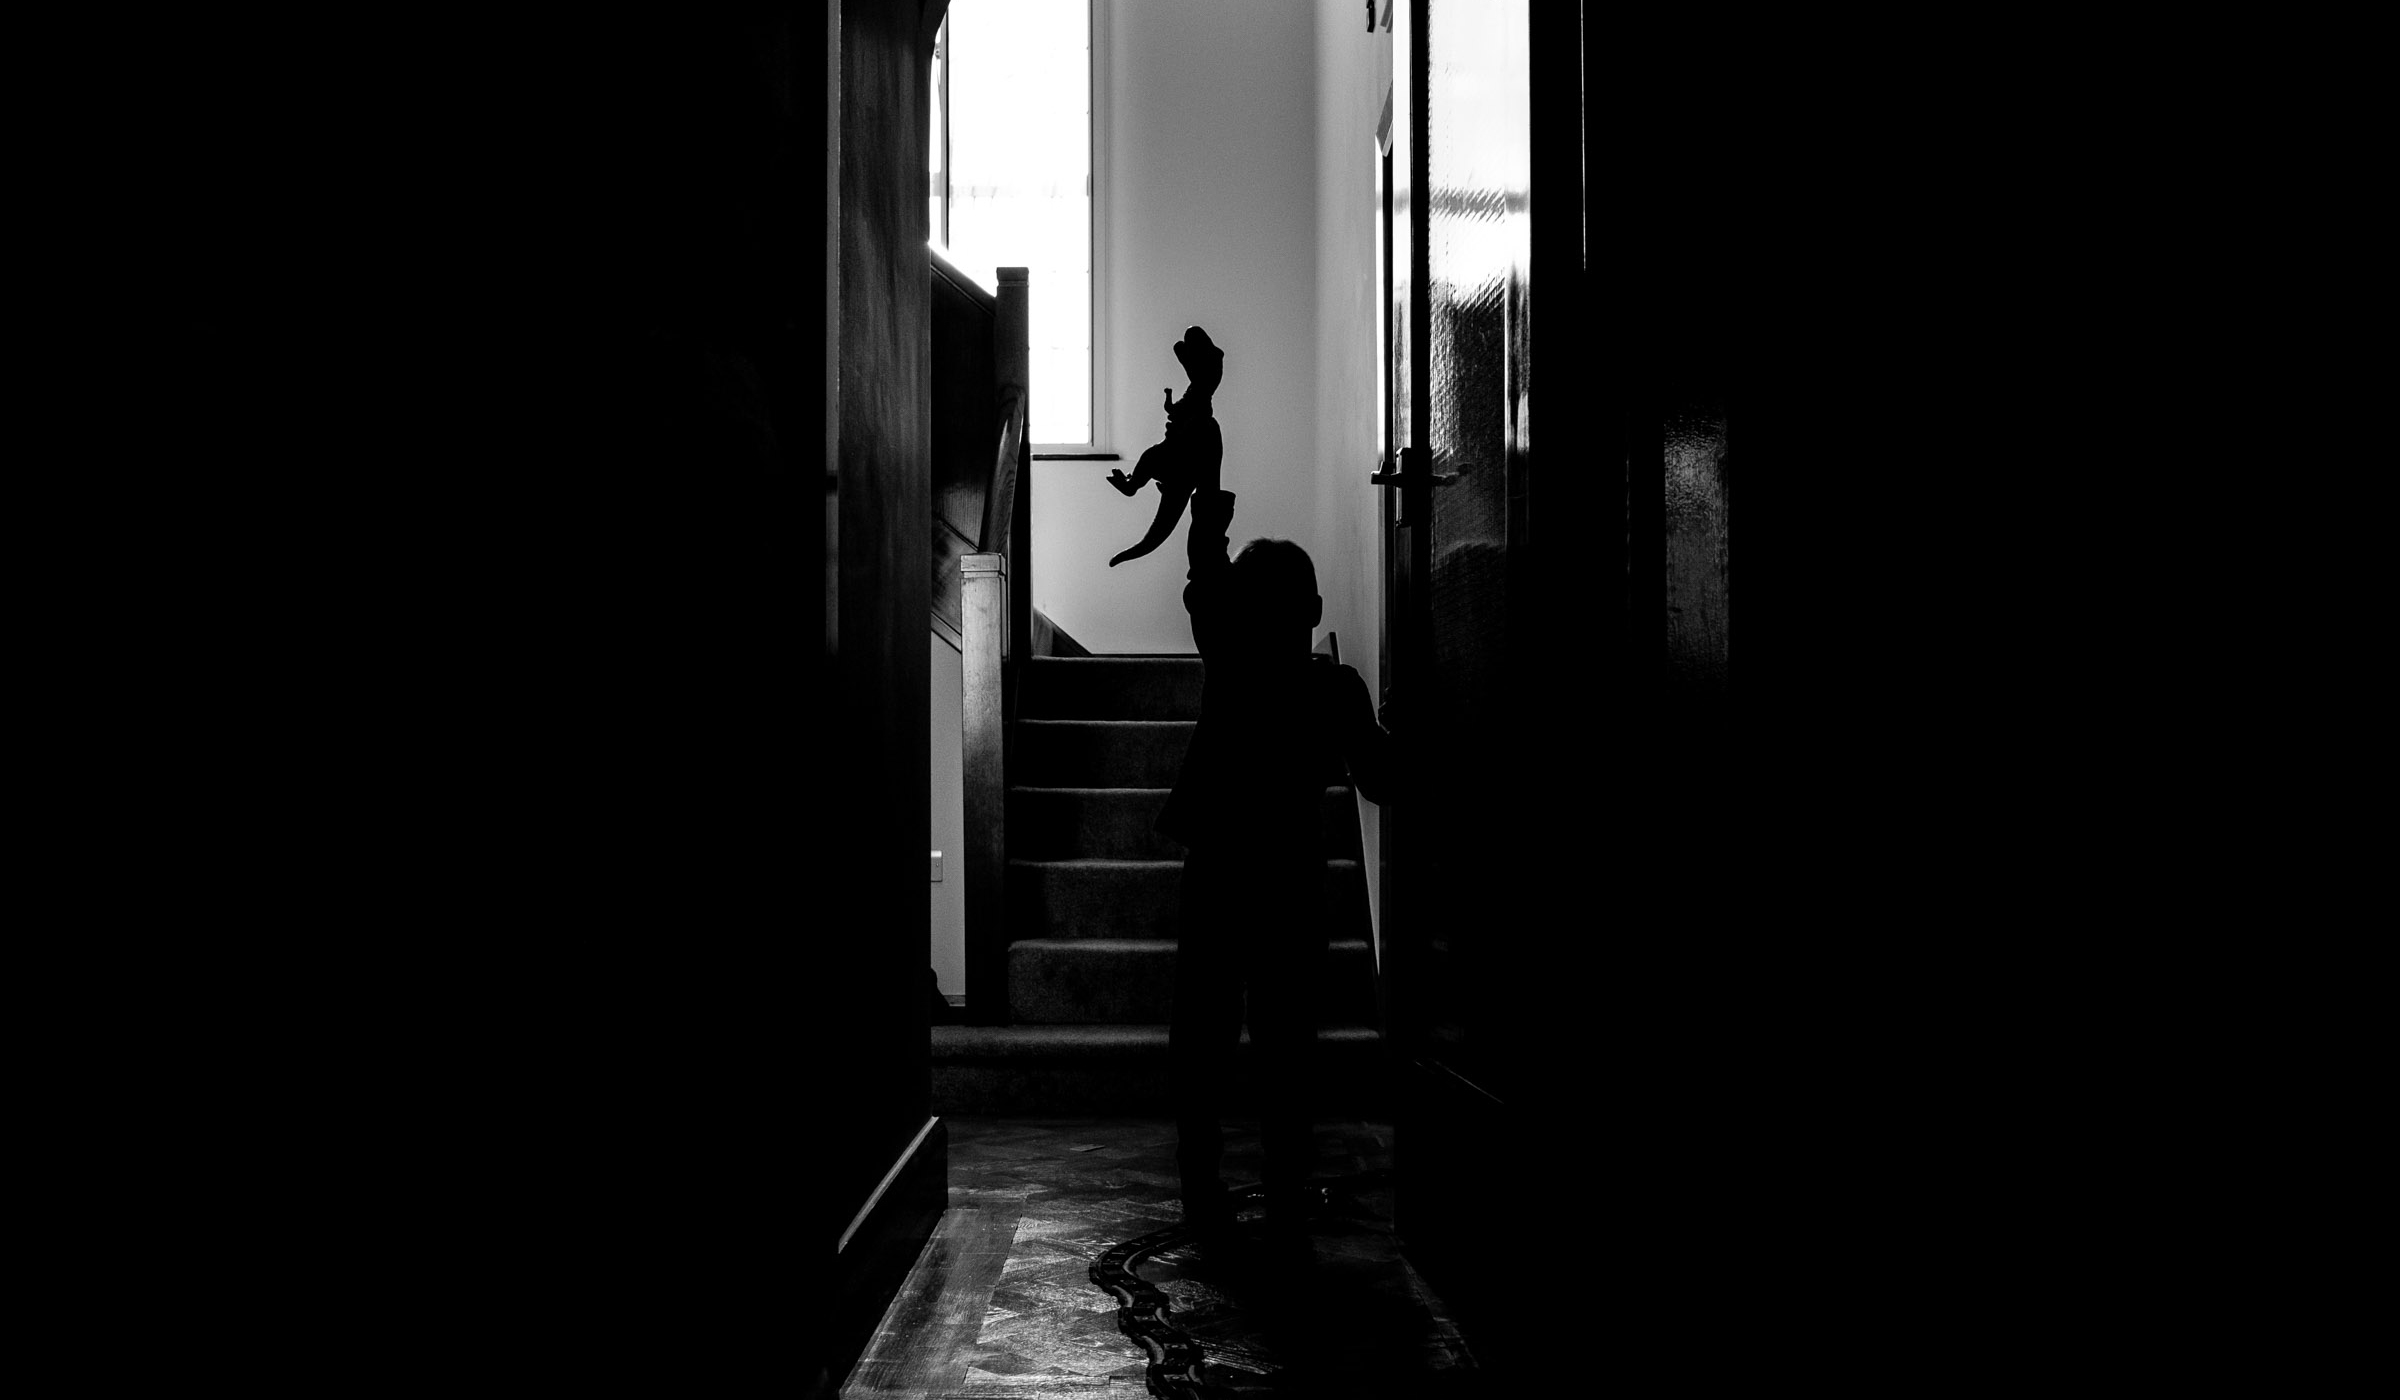 the silhouette of a boy playing with a dinosaur